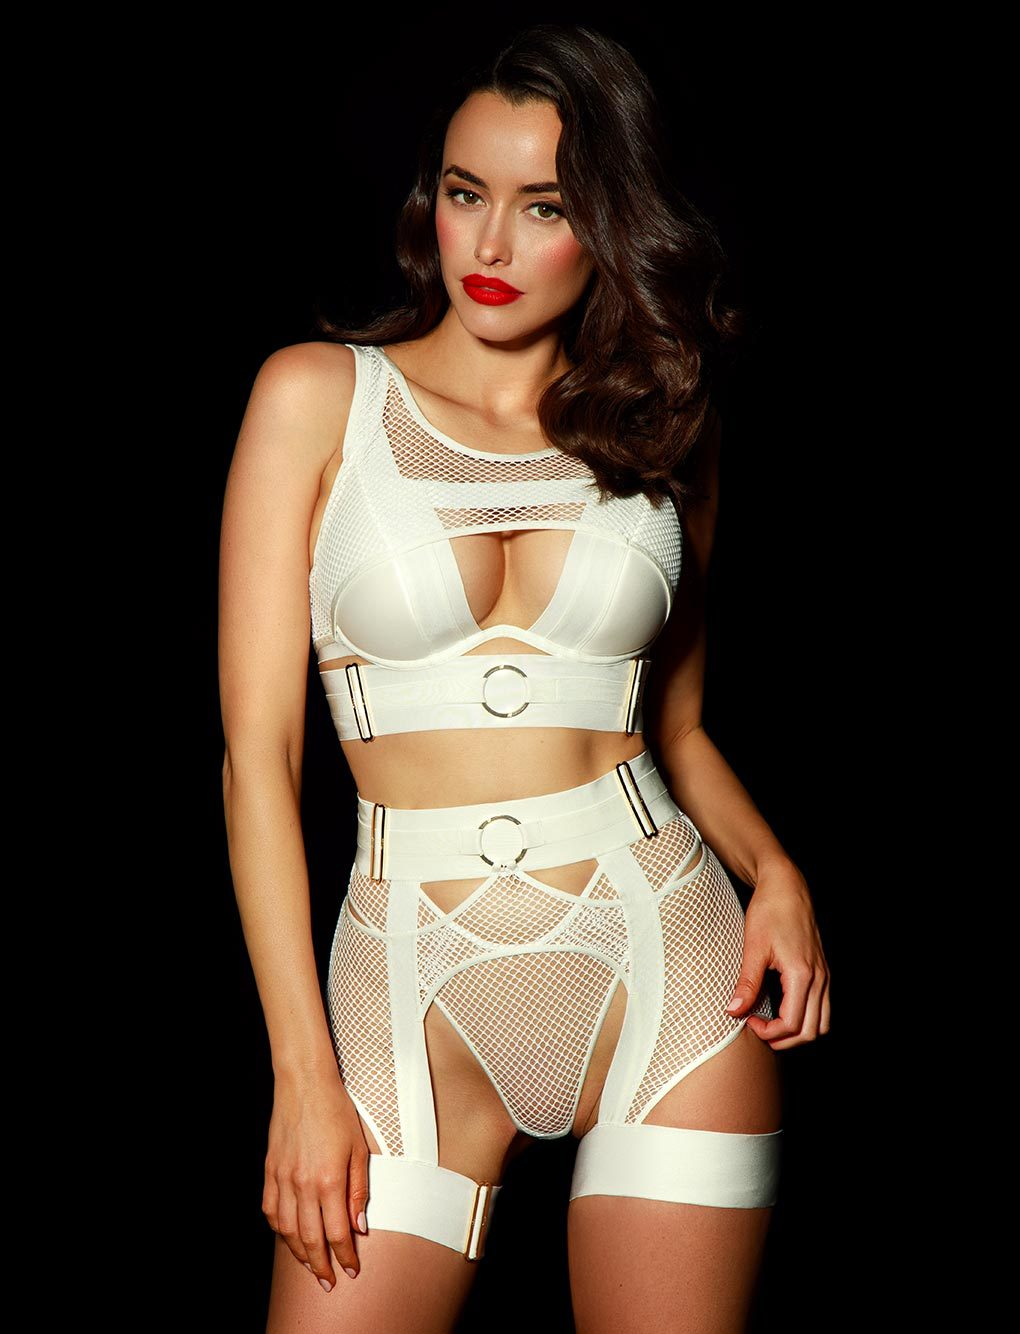 Axl Ivory Suspender | Shop Suspenders | Honey Birdette